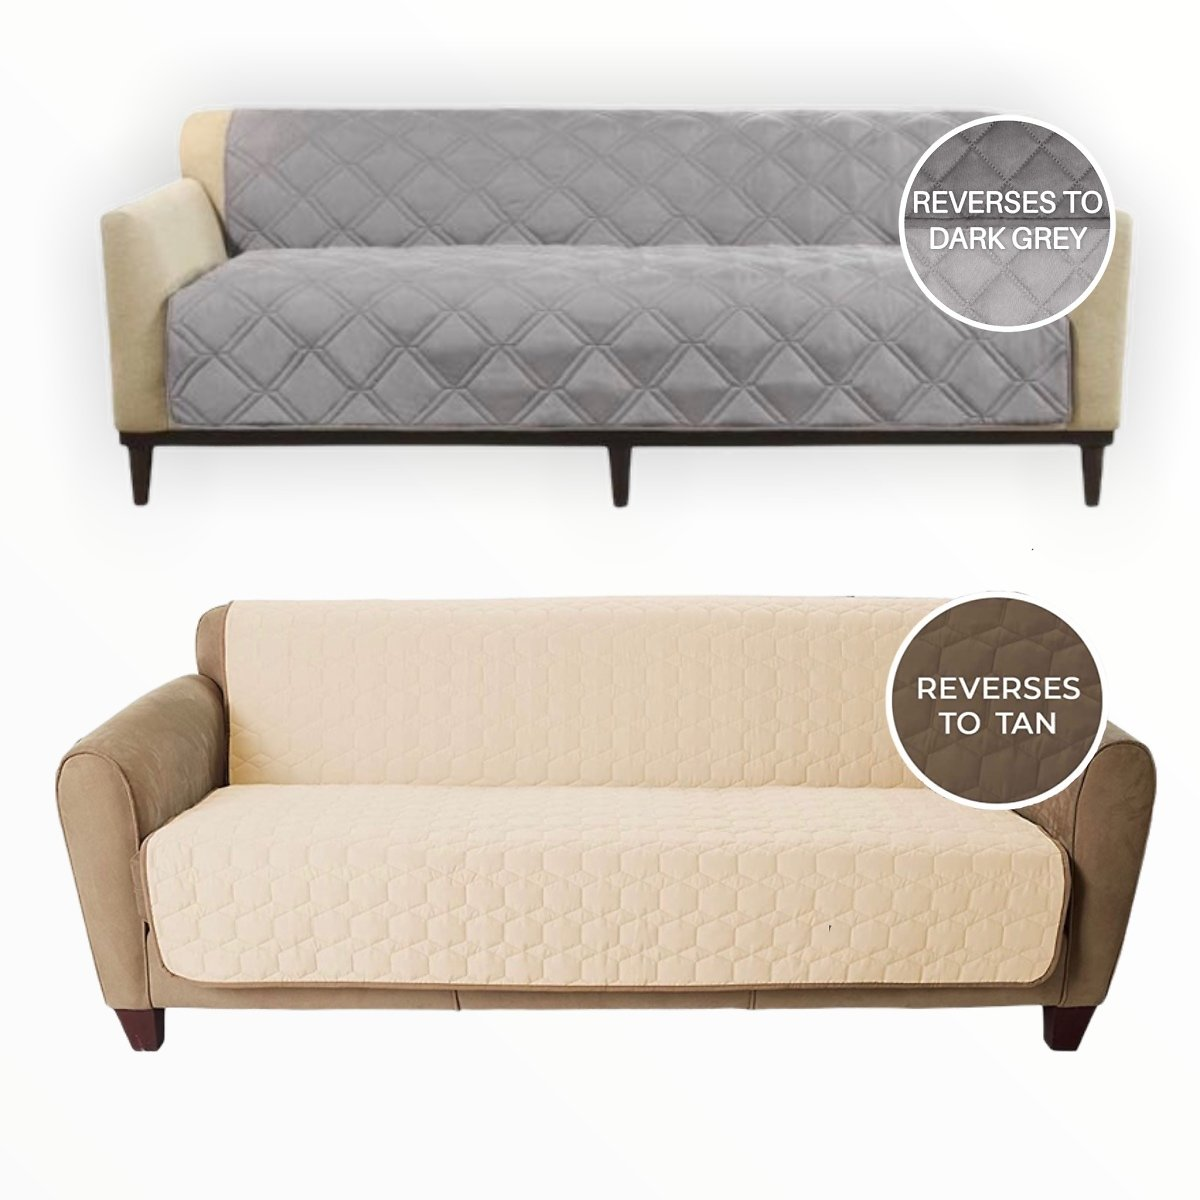 SureFit Reversible Couch / Bed Cover - Design Makes This Couch Cover a Perfect Fit for All Types of Furniture Including Your Sofa, Futon or Bed. - Super Durable Protecting from Pets, Kids and All Kinds of Stains! - Machine...